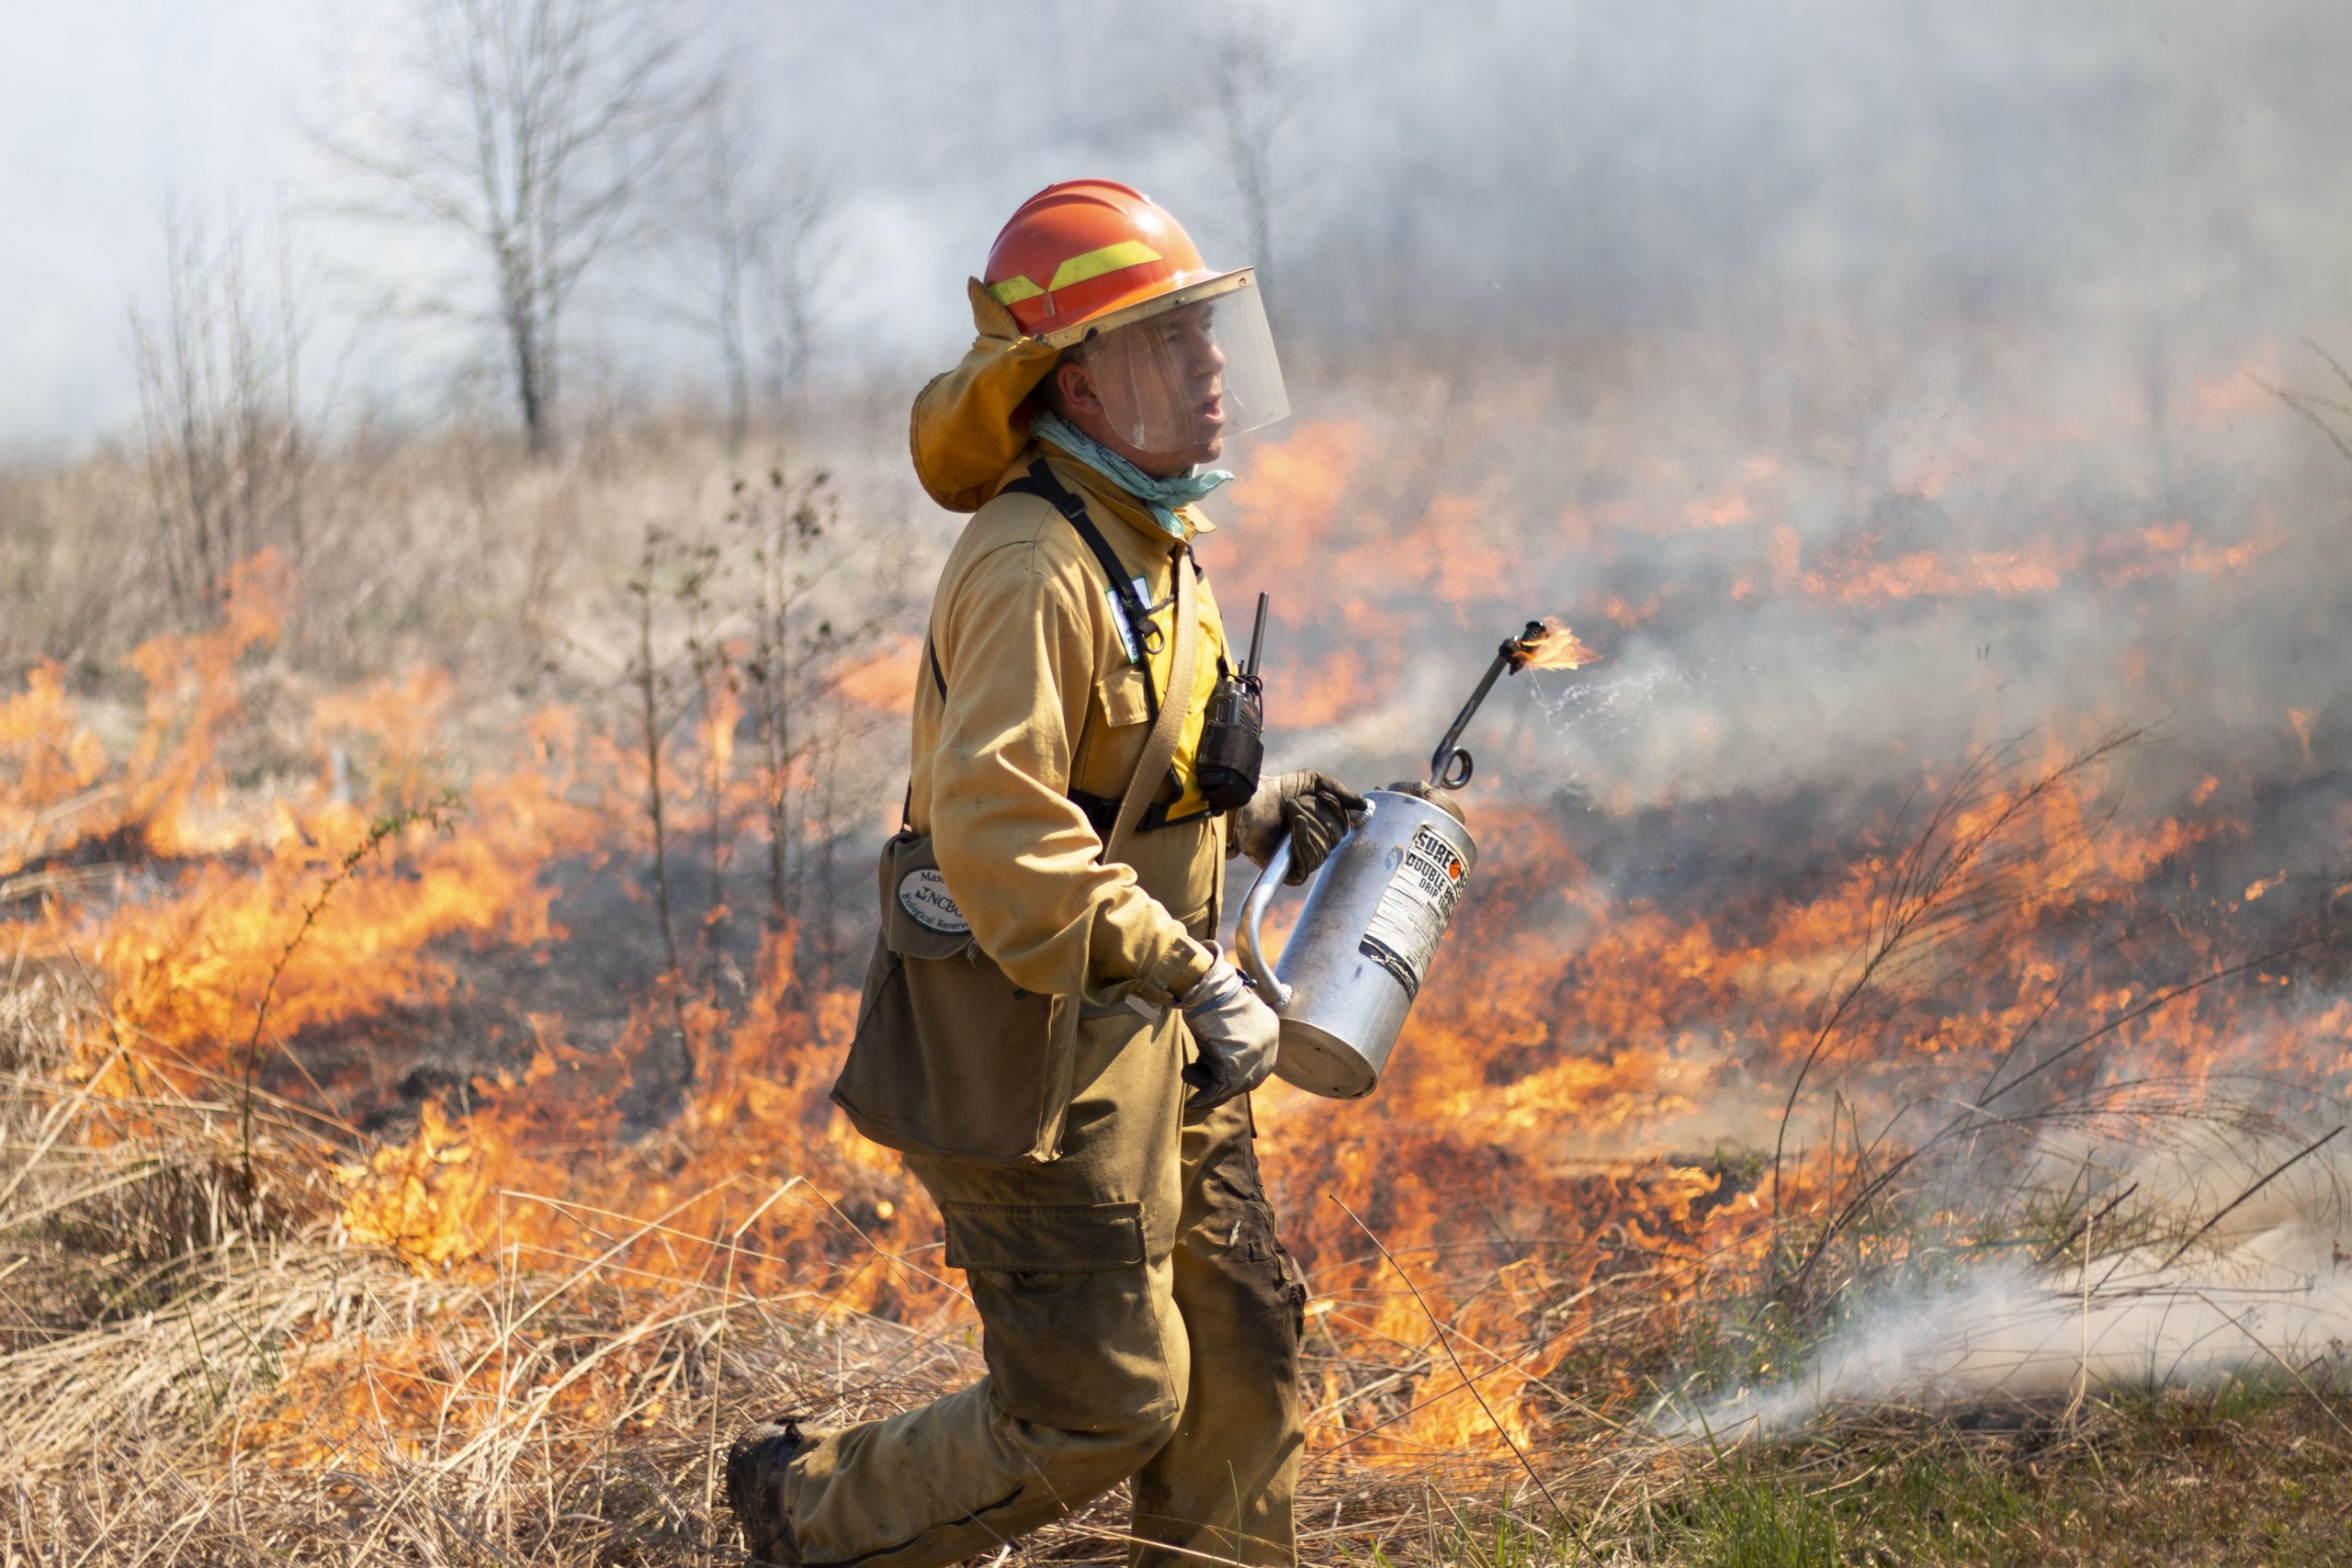 Prescribed fire is an important tool for land management on the NCBG lands Johnny helps manage. Photo: Alyssa LaFaro, UNC Research.